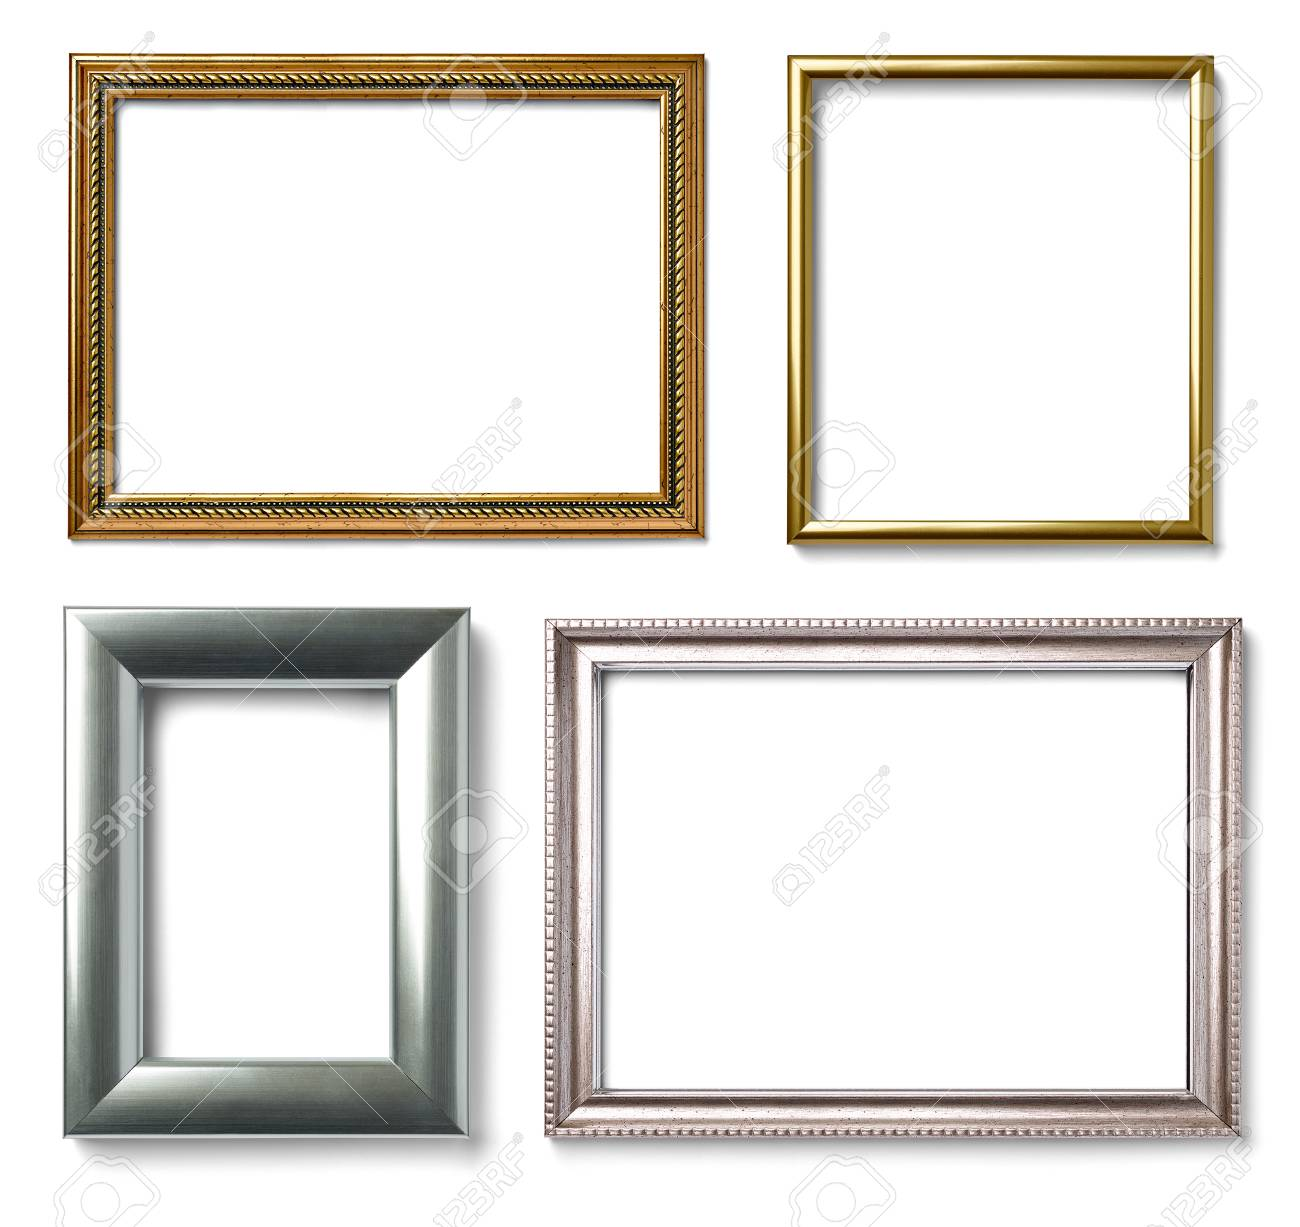 Collection of various vintage wood frame on white background stock collection of various vintage wood frame on white background stock photo 52592095 jeuxipadfo Gallery